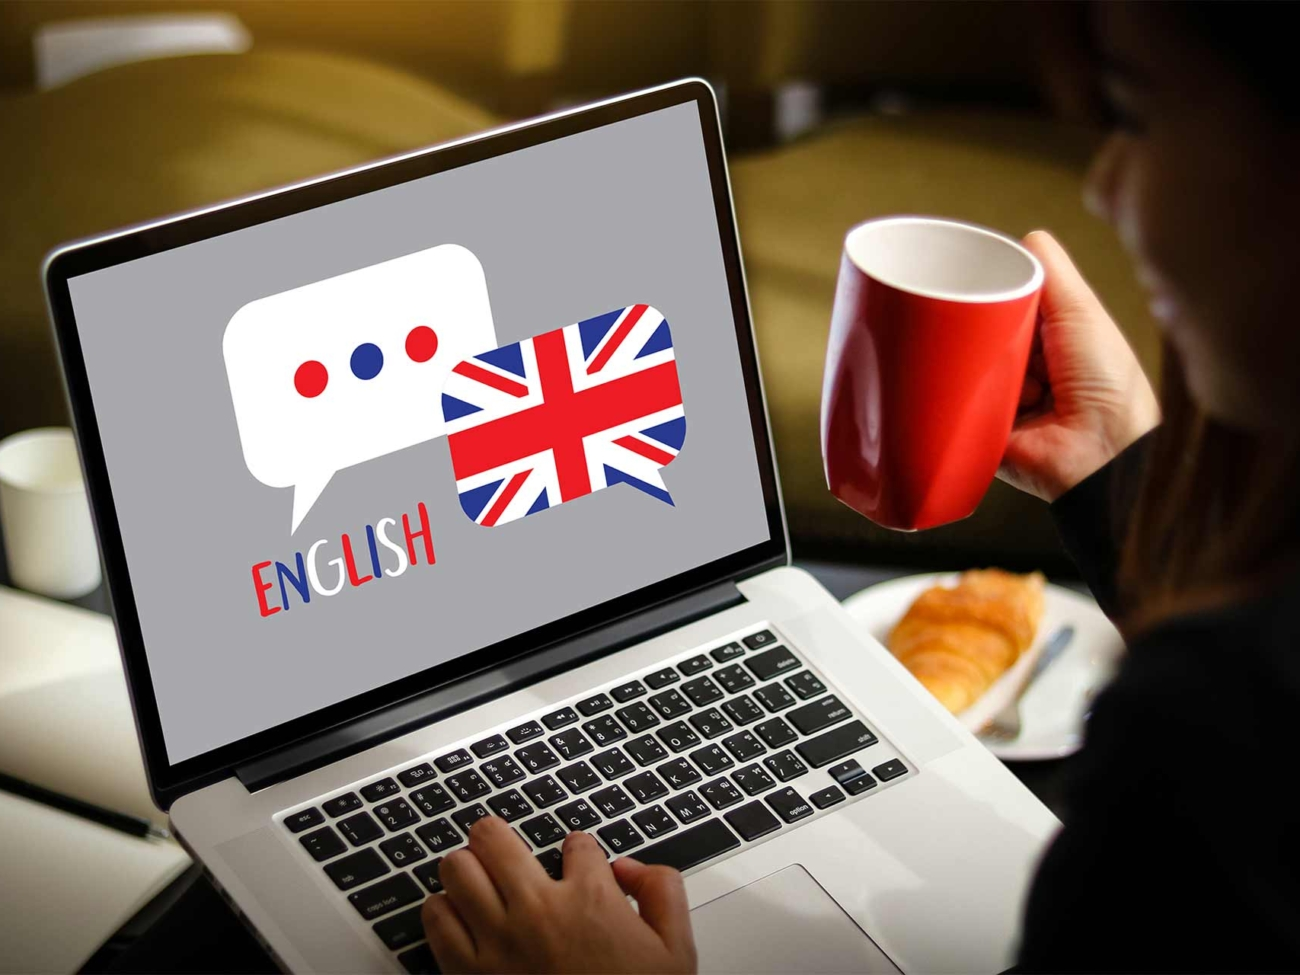 elearning-online-with-laptop-over-breakfast-course-british-english-pronunciation-british-accent-academy